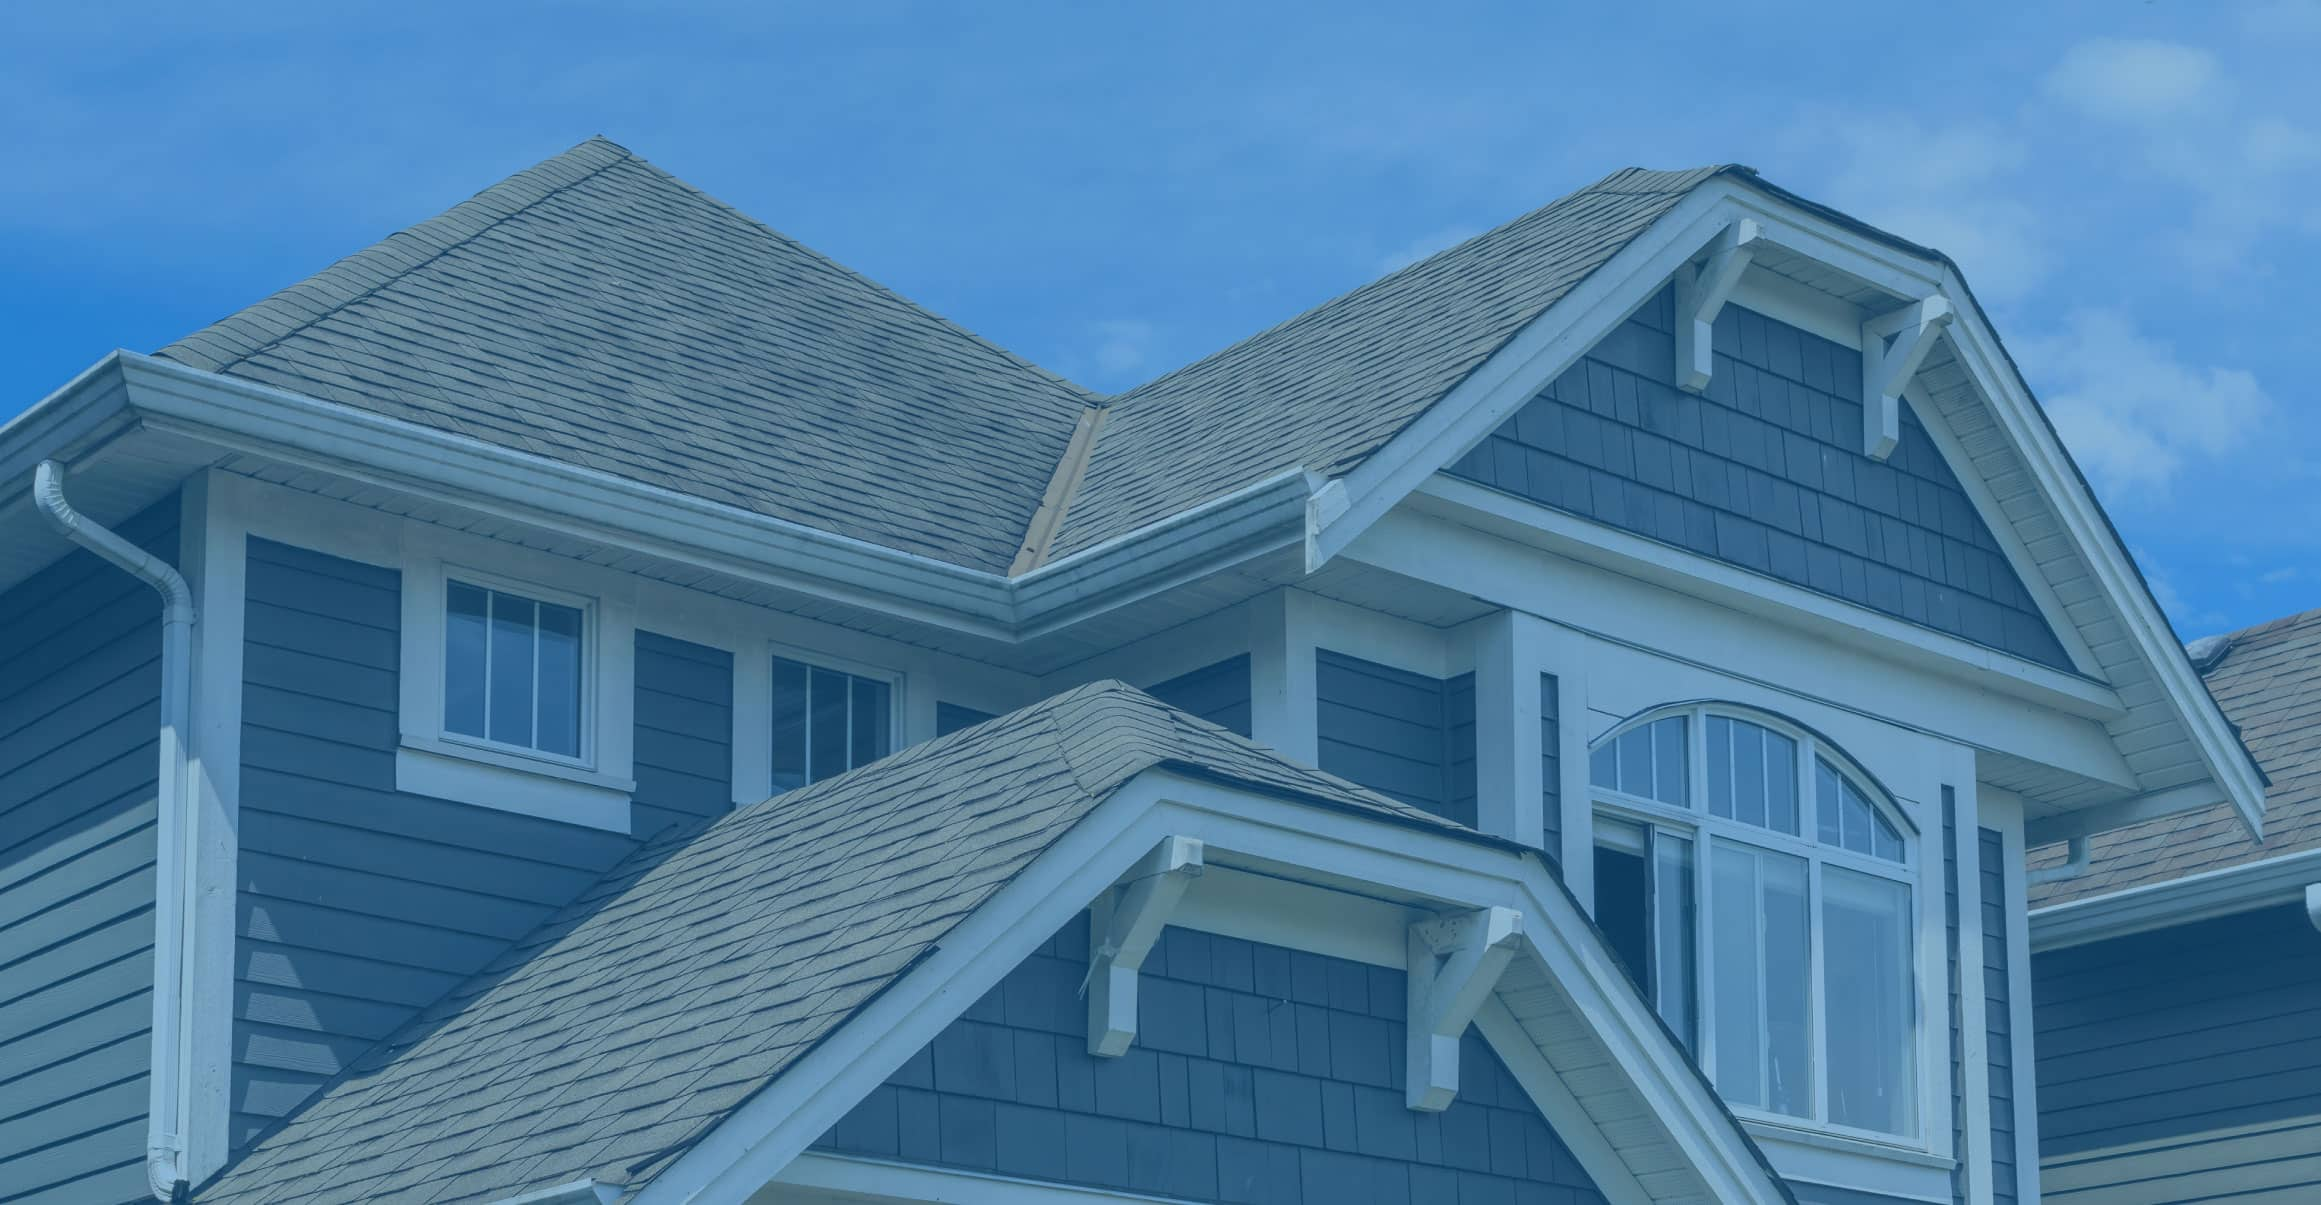 Miceli Roofing residential and commercial roofing services